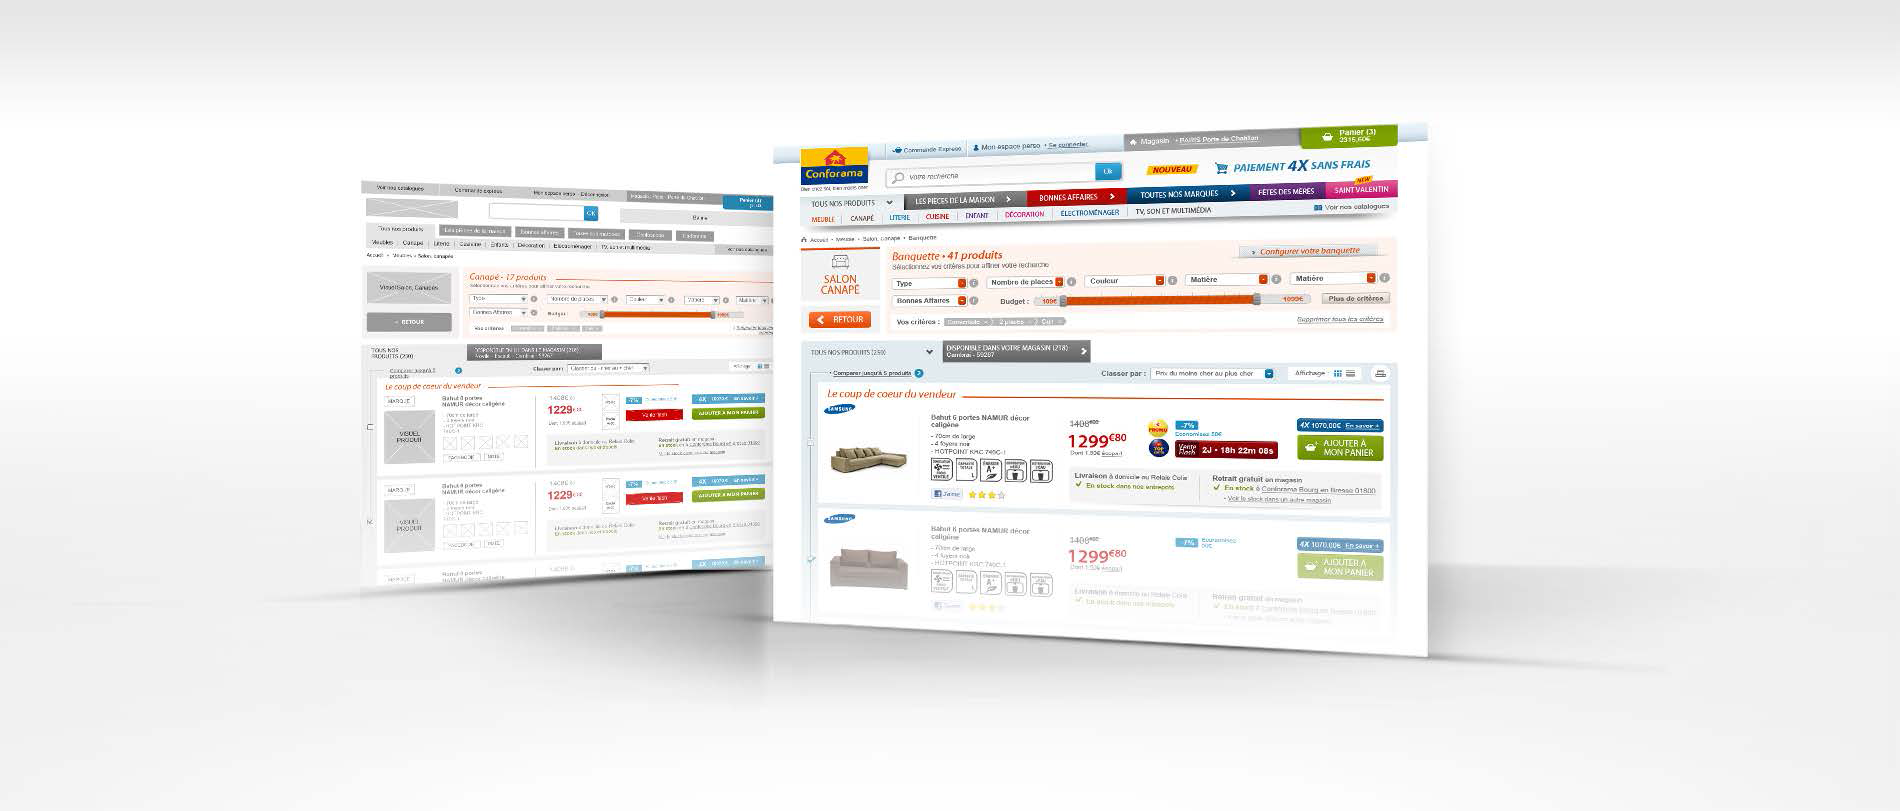 SECTEUR E-COMMERCE Conforama.fr: Optimisation du tunnel d achat Analyser le tunnel d achat du site Conforama.